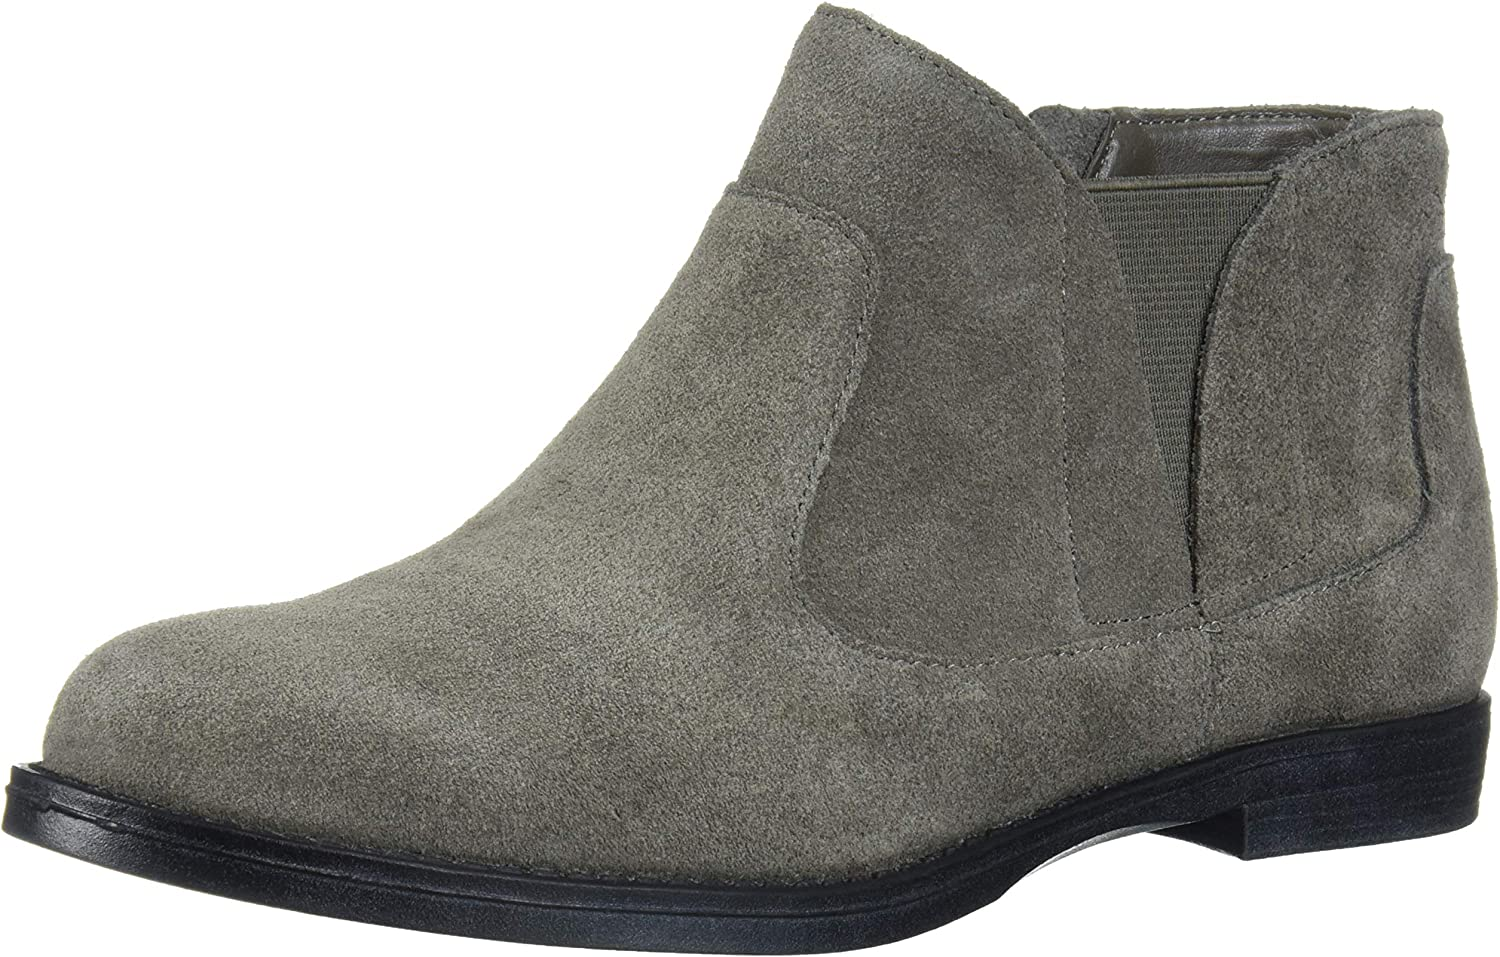 Sale item Bella Vita Women's Rory Boot Department store Bootie Ankle